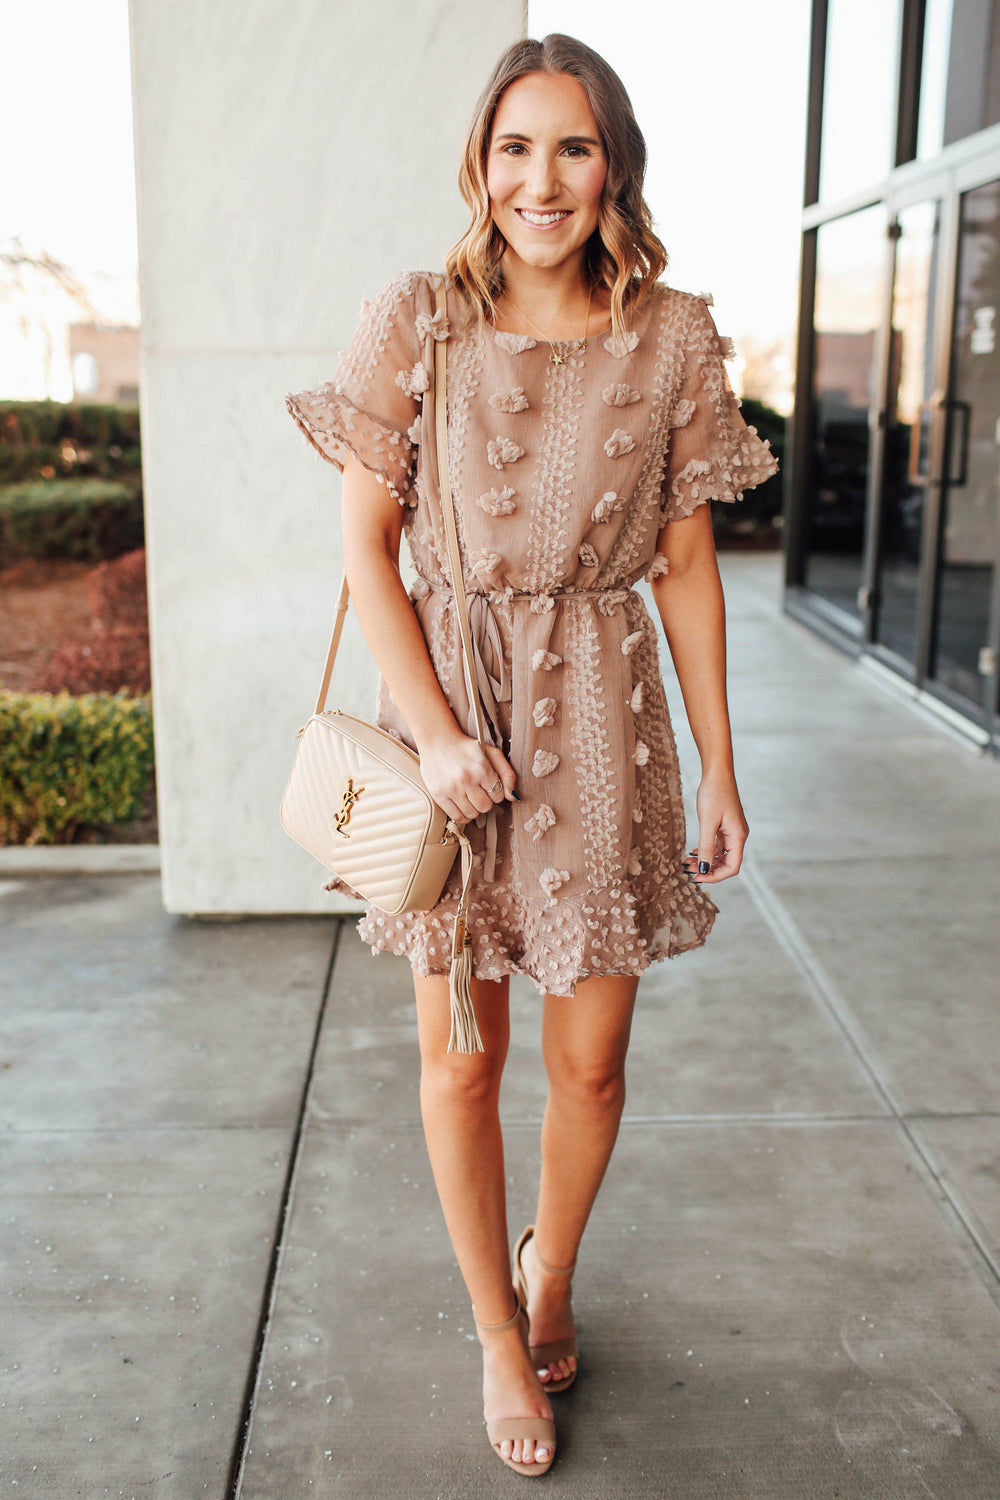 Mocha Pom Pom Dress Inspired By Ashley from Twenties Girl Style